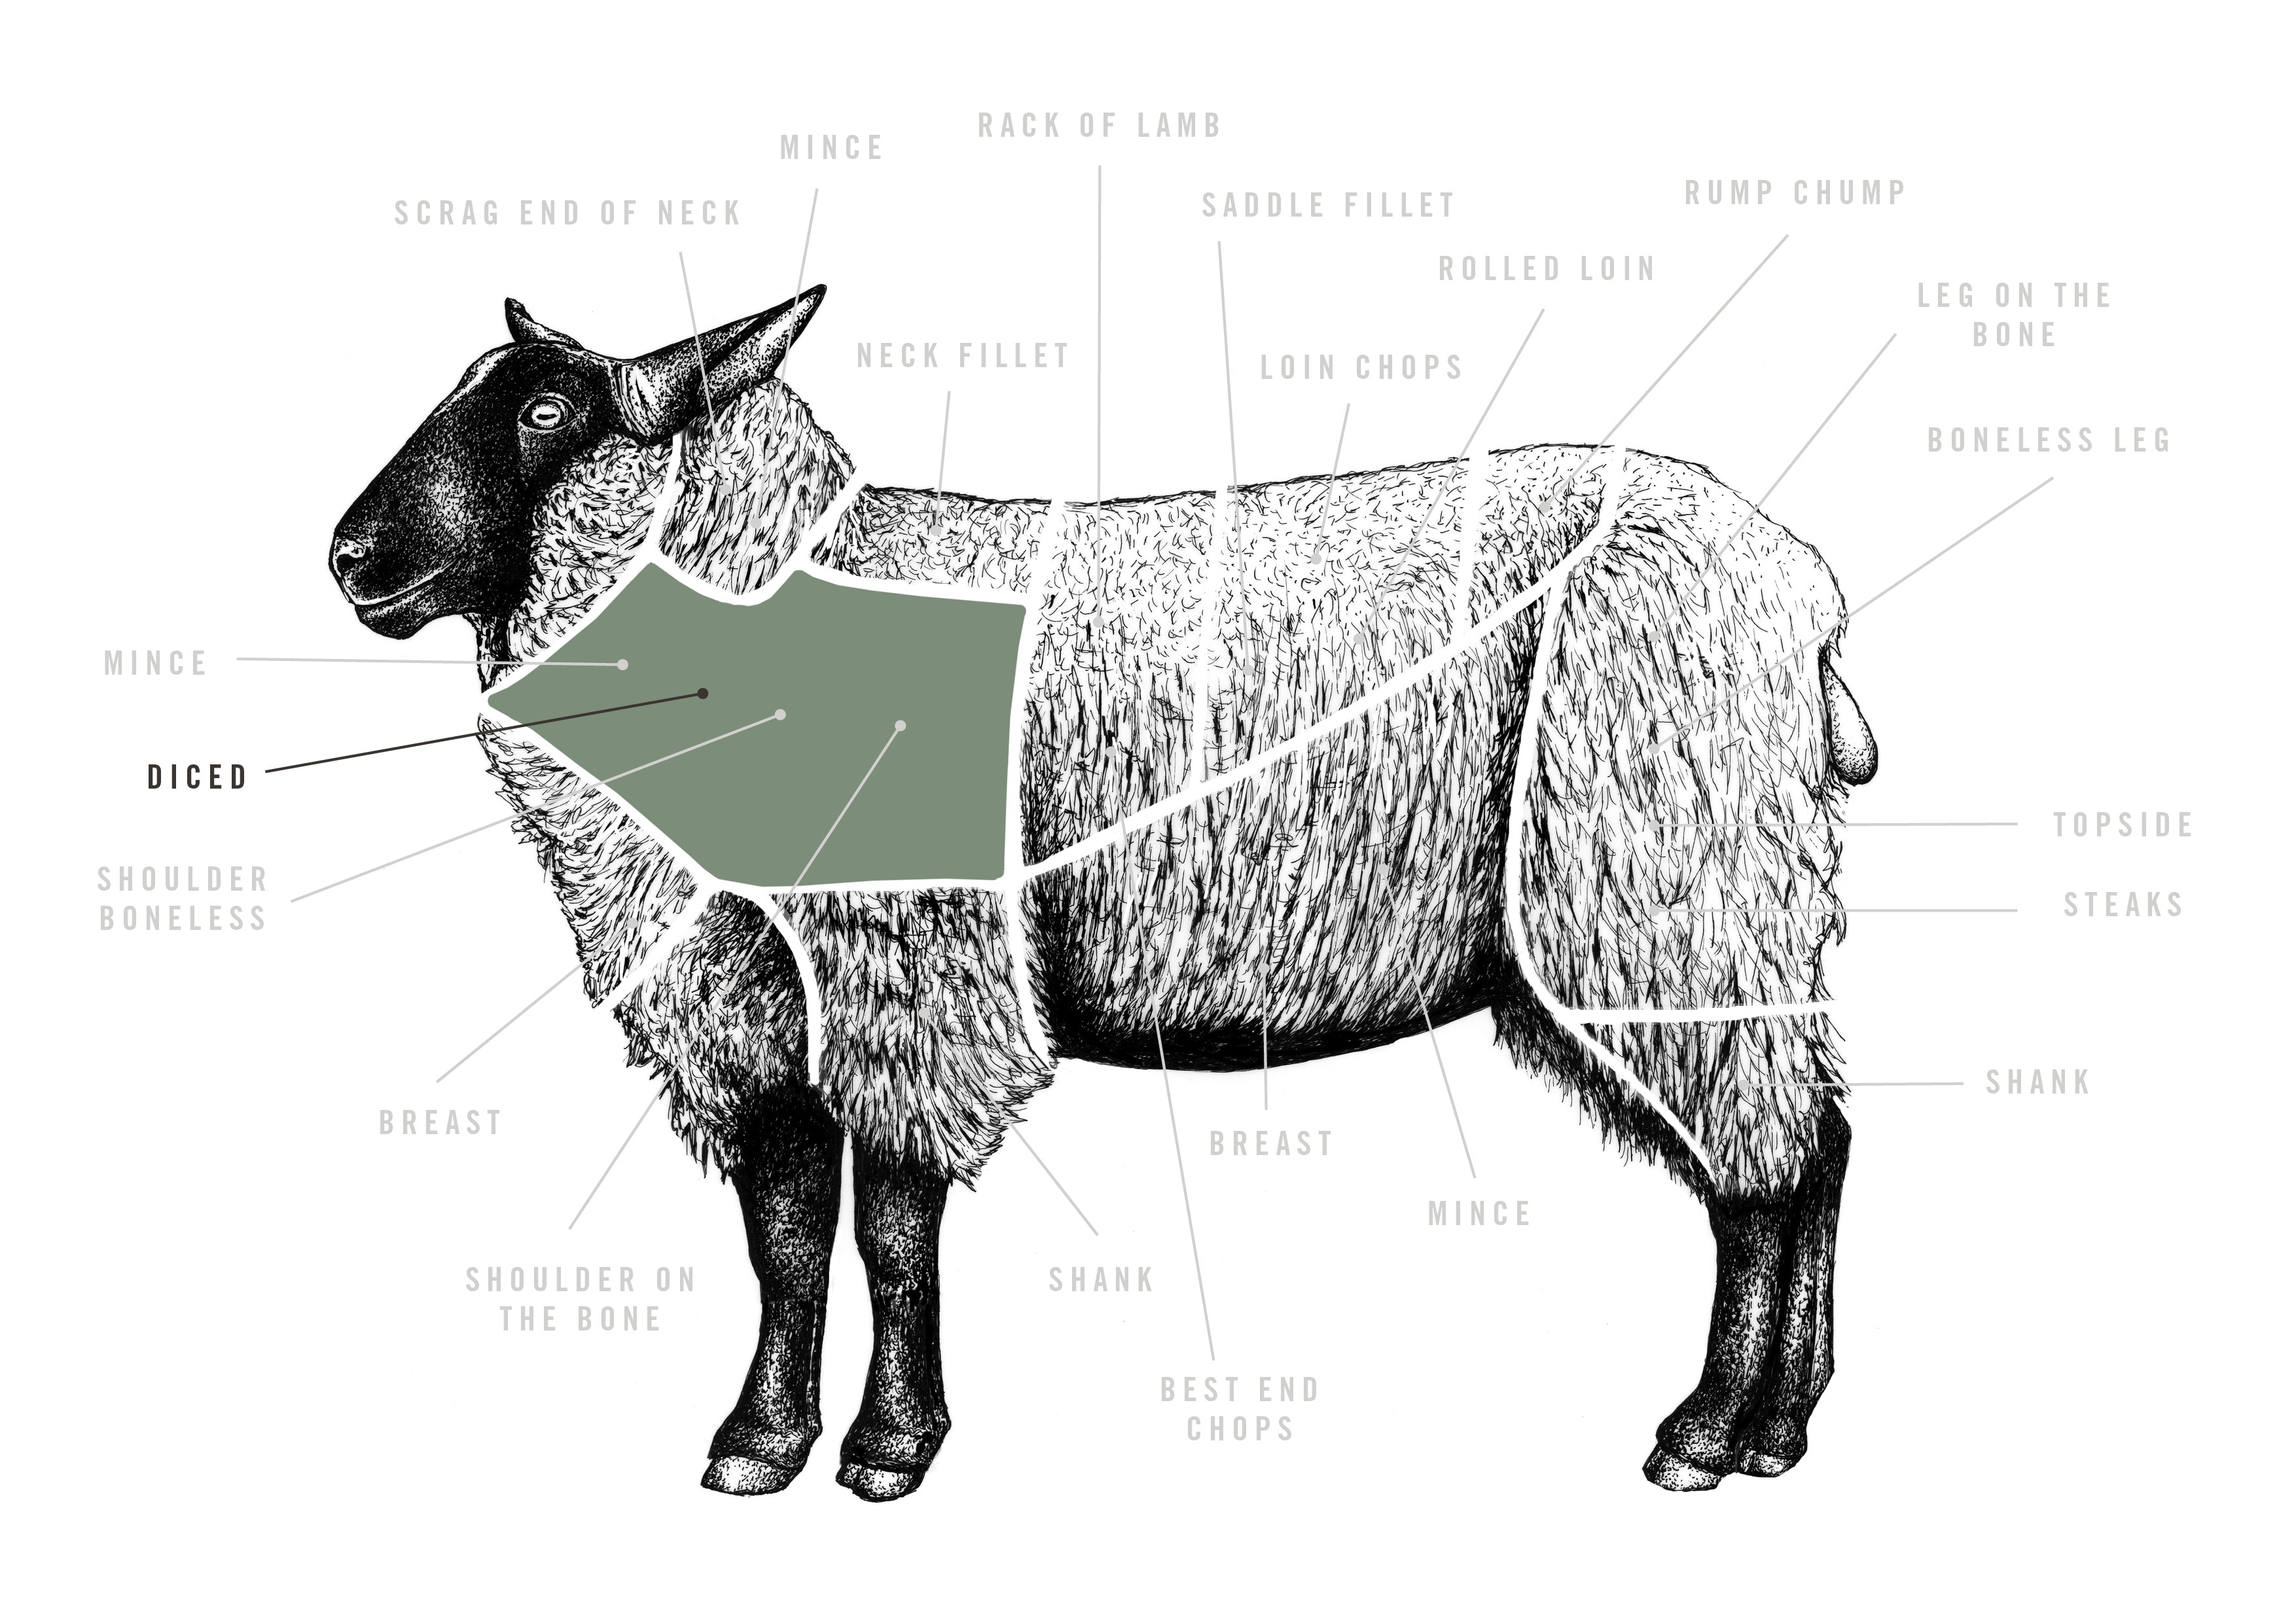 Diced Lamb meat cuts diagram